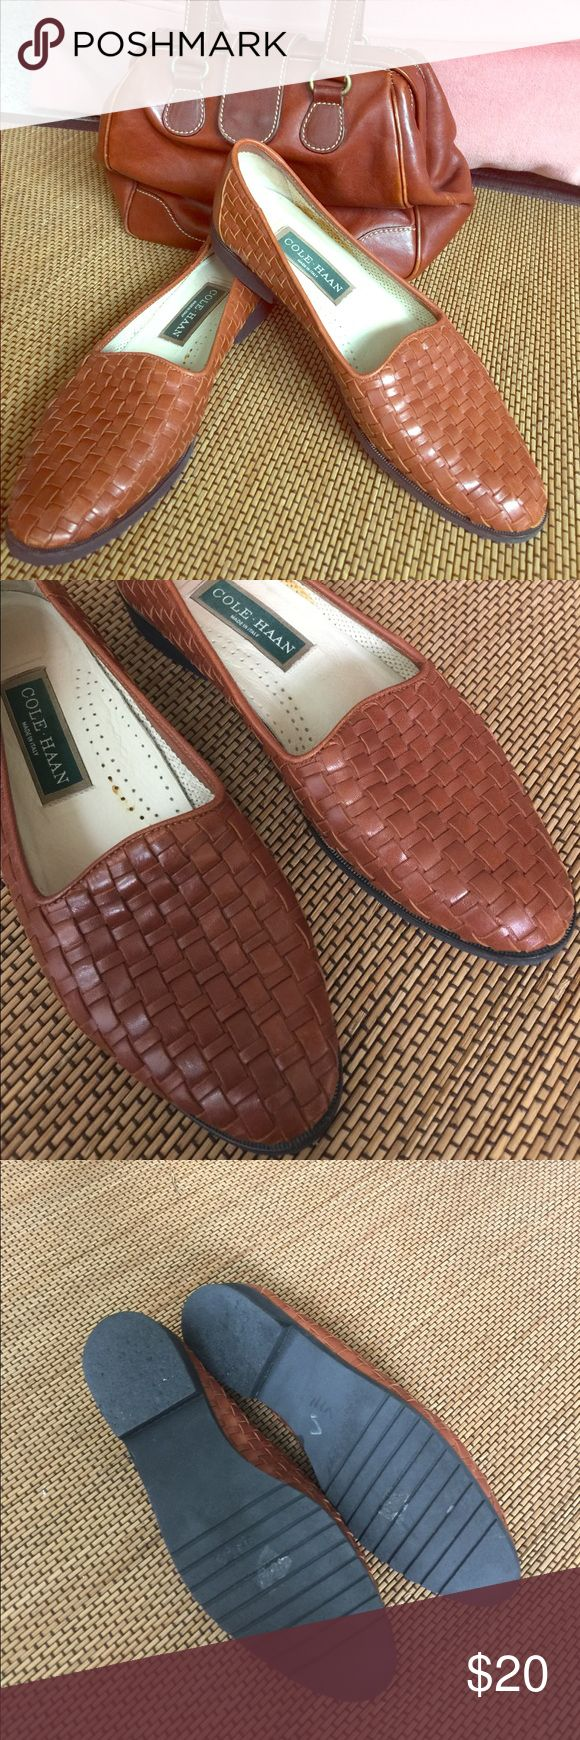 Cole Haan Soft Italian Loafer 8AA Narrow Fit like7.5 Very comfy and in great shape! Cole Haan Shoes Flats & Loafers